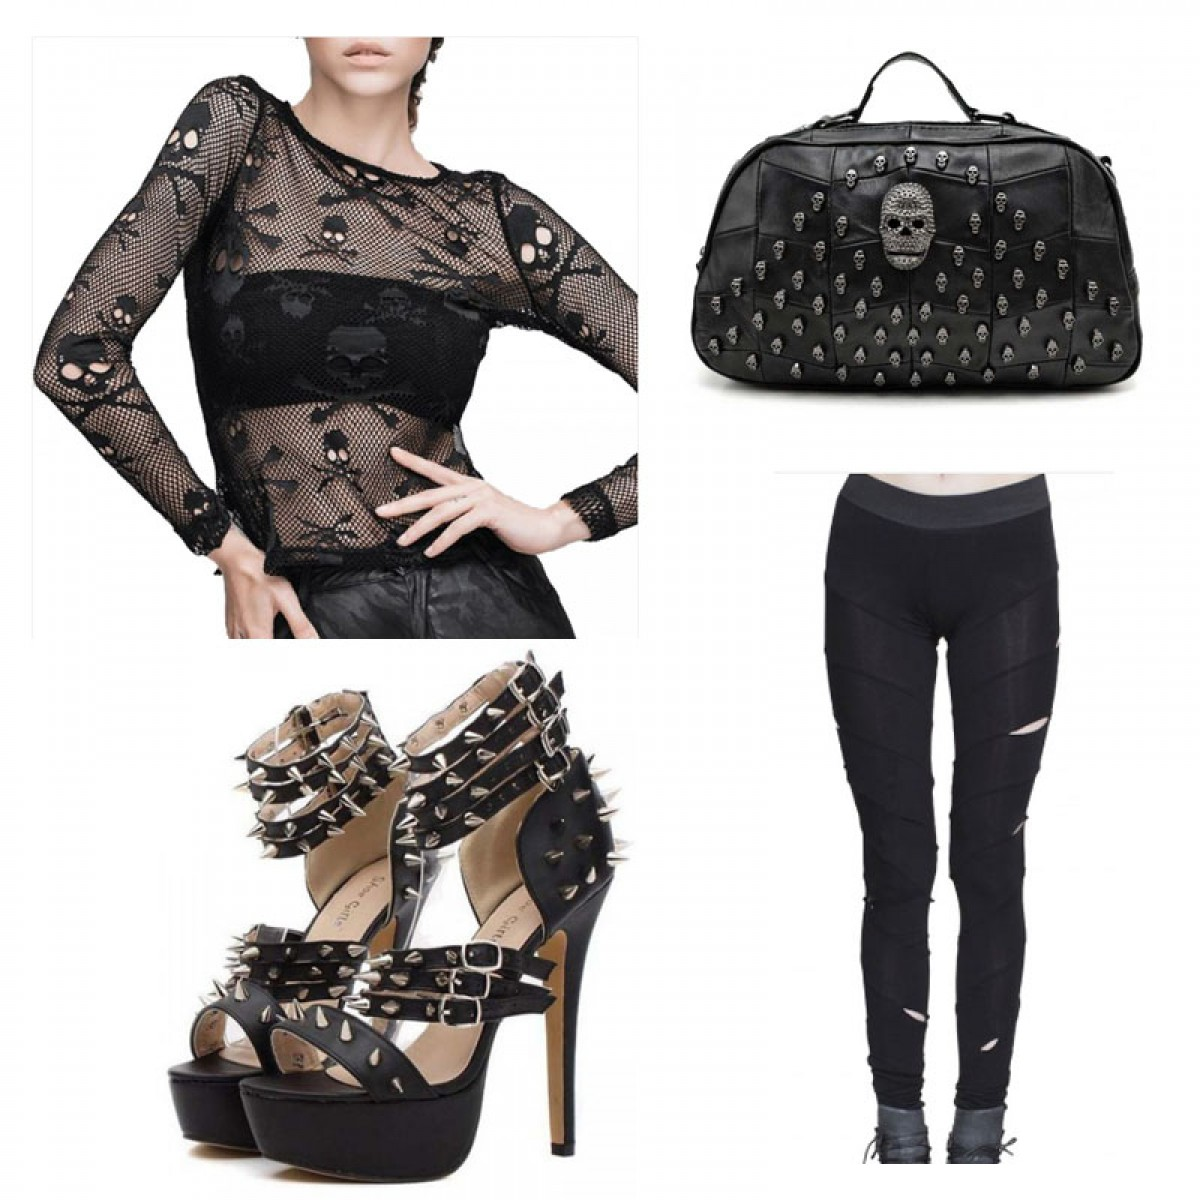 Skulls and Spikes Goth Outfit  sc 1 st  LATICCI & Womens Punk Outfit Ideas | LATICCI